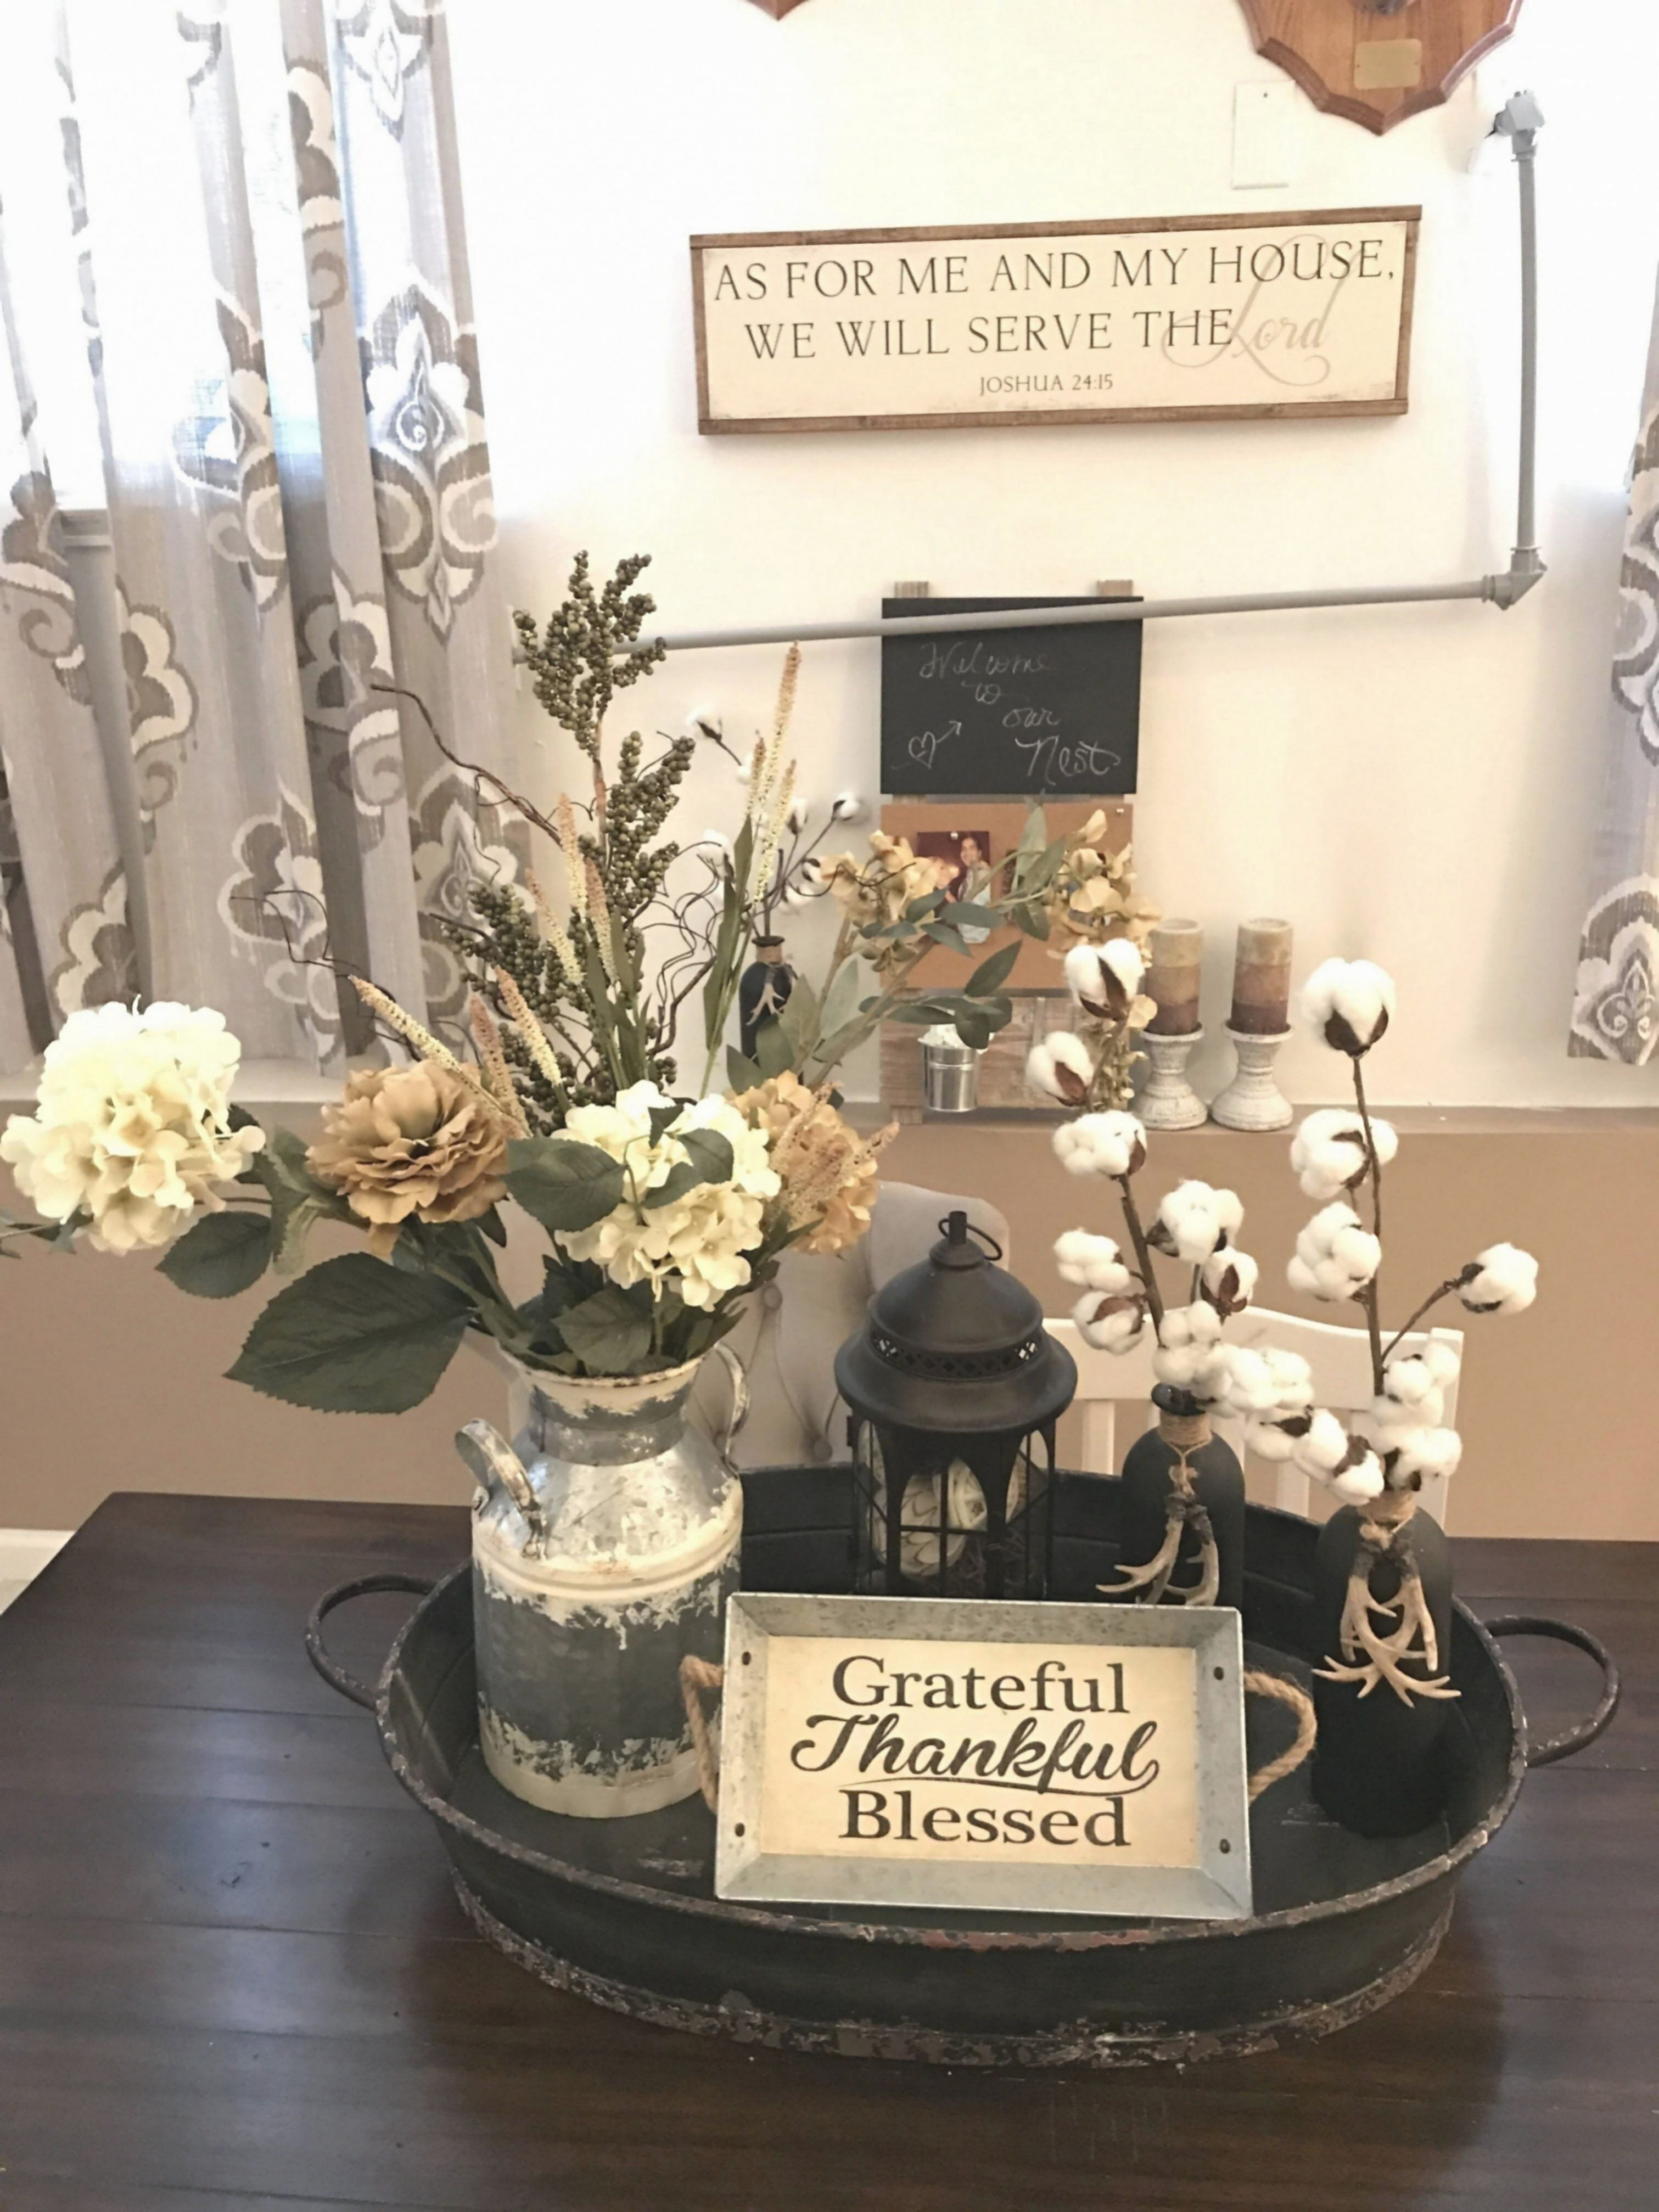 Farmhouse Style Centerpiece For Dining Table Dining Table Centerpiece Farmhouse Table Centerpieces Dining Room Centerpiece